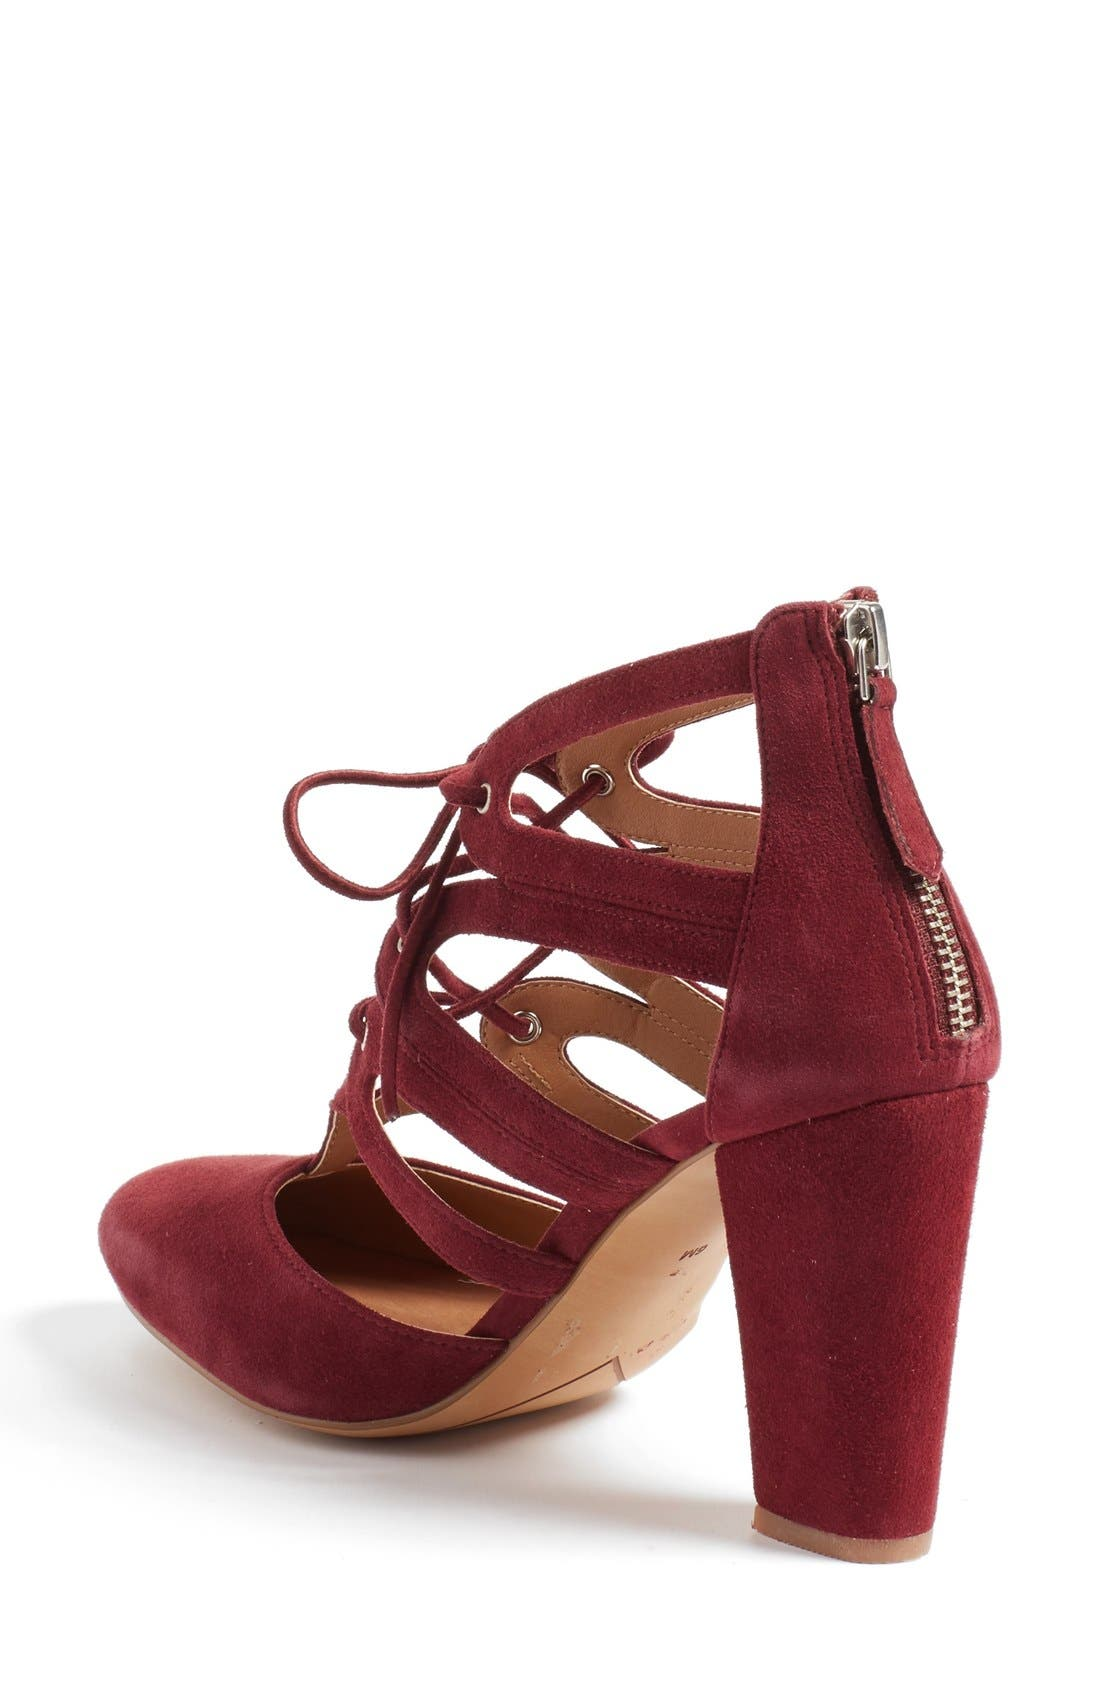 'Sydney' Block Heel Ghillie Pump,                             Alternate thumbnail 2, color,                             Burgundy Suede